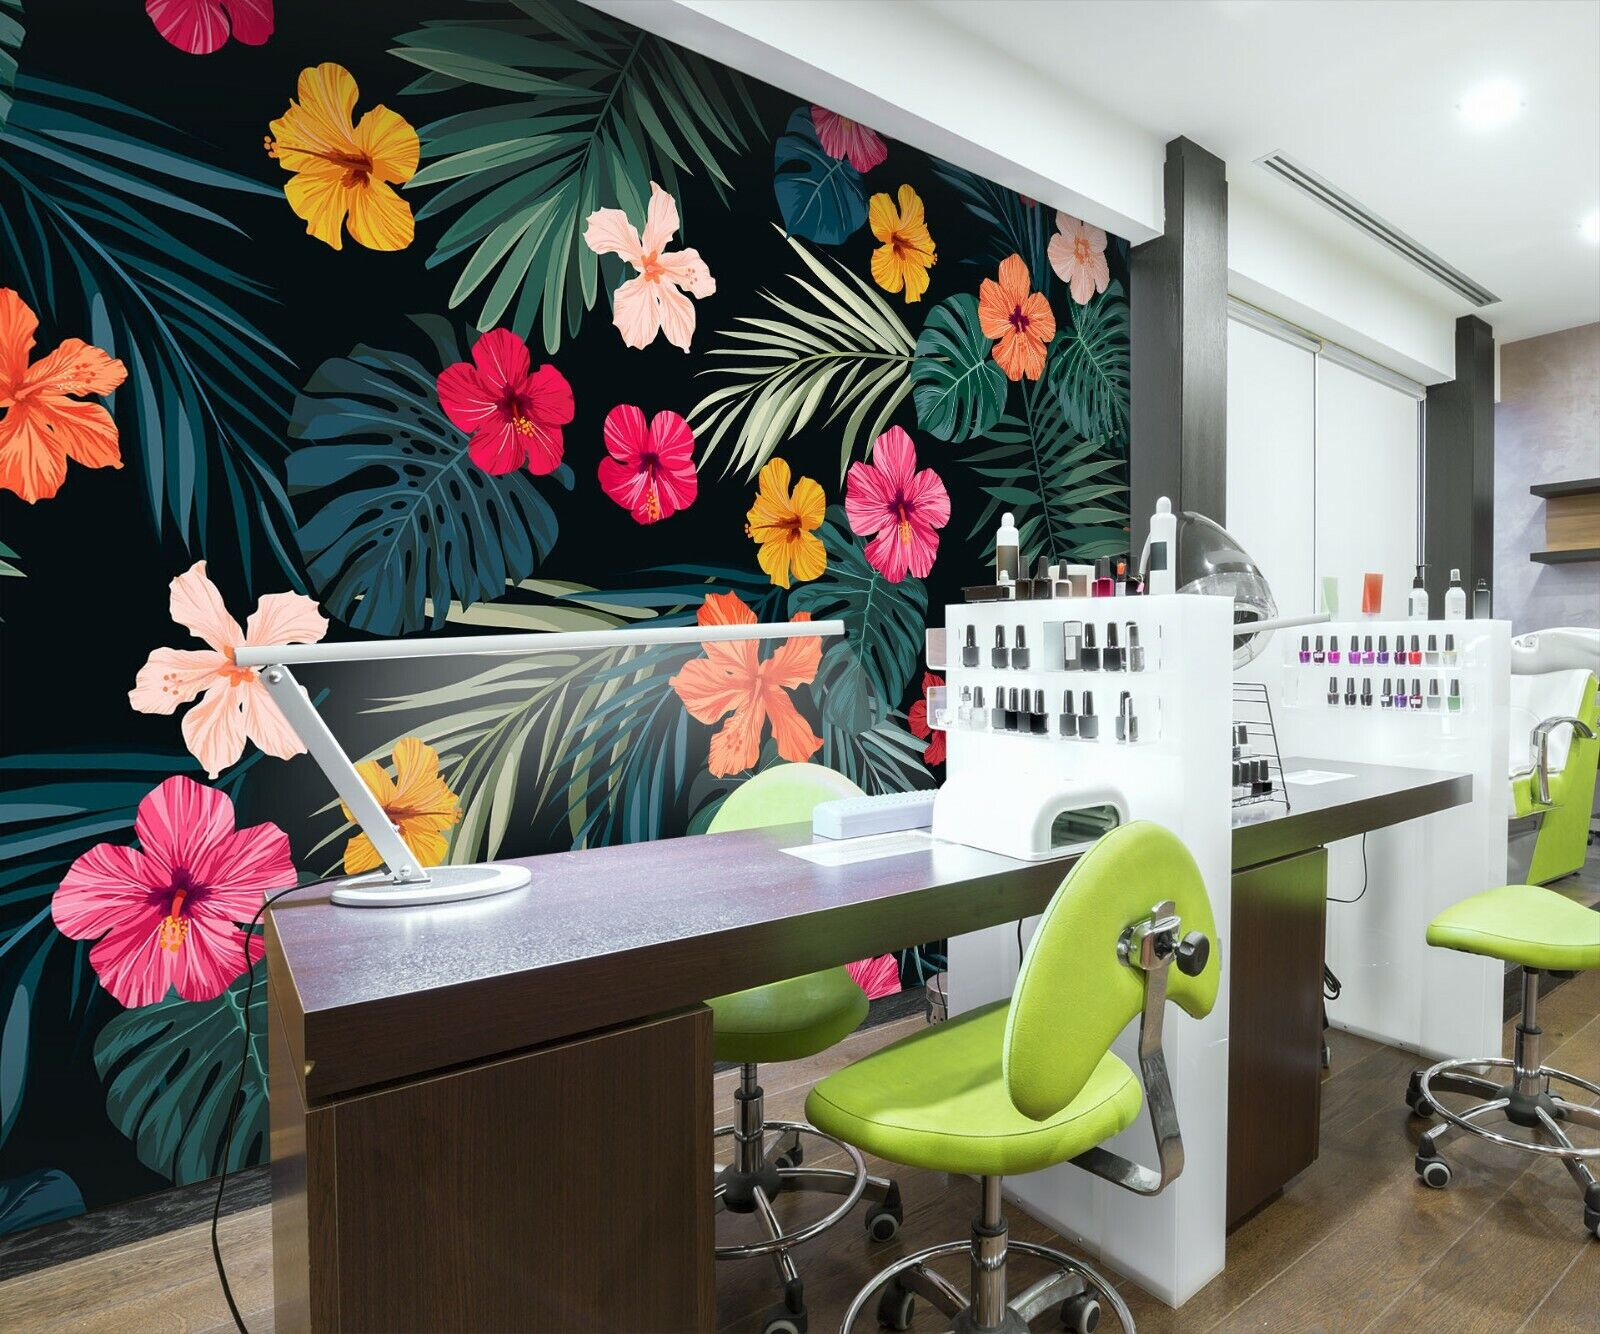 3D Flower Plant N367 Business Wallpaper Wall Mural Self-adhesive Commerce Amy